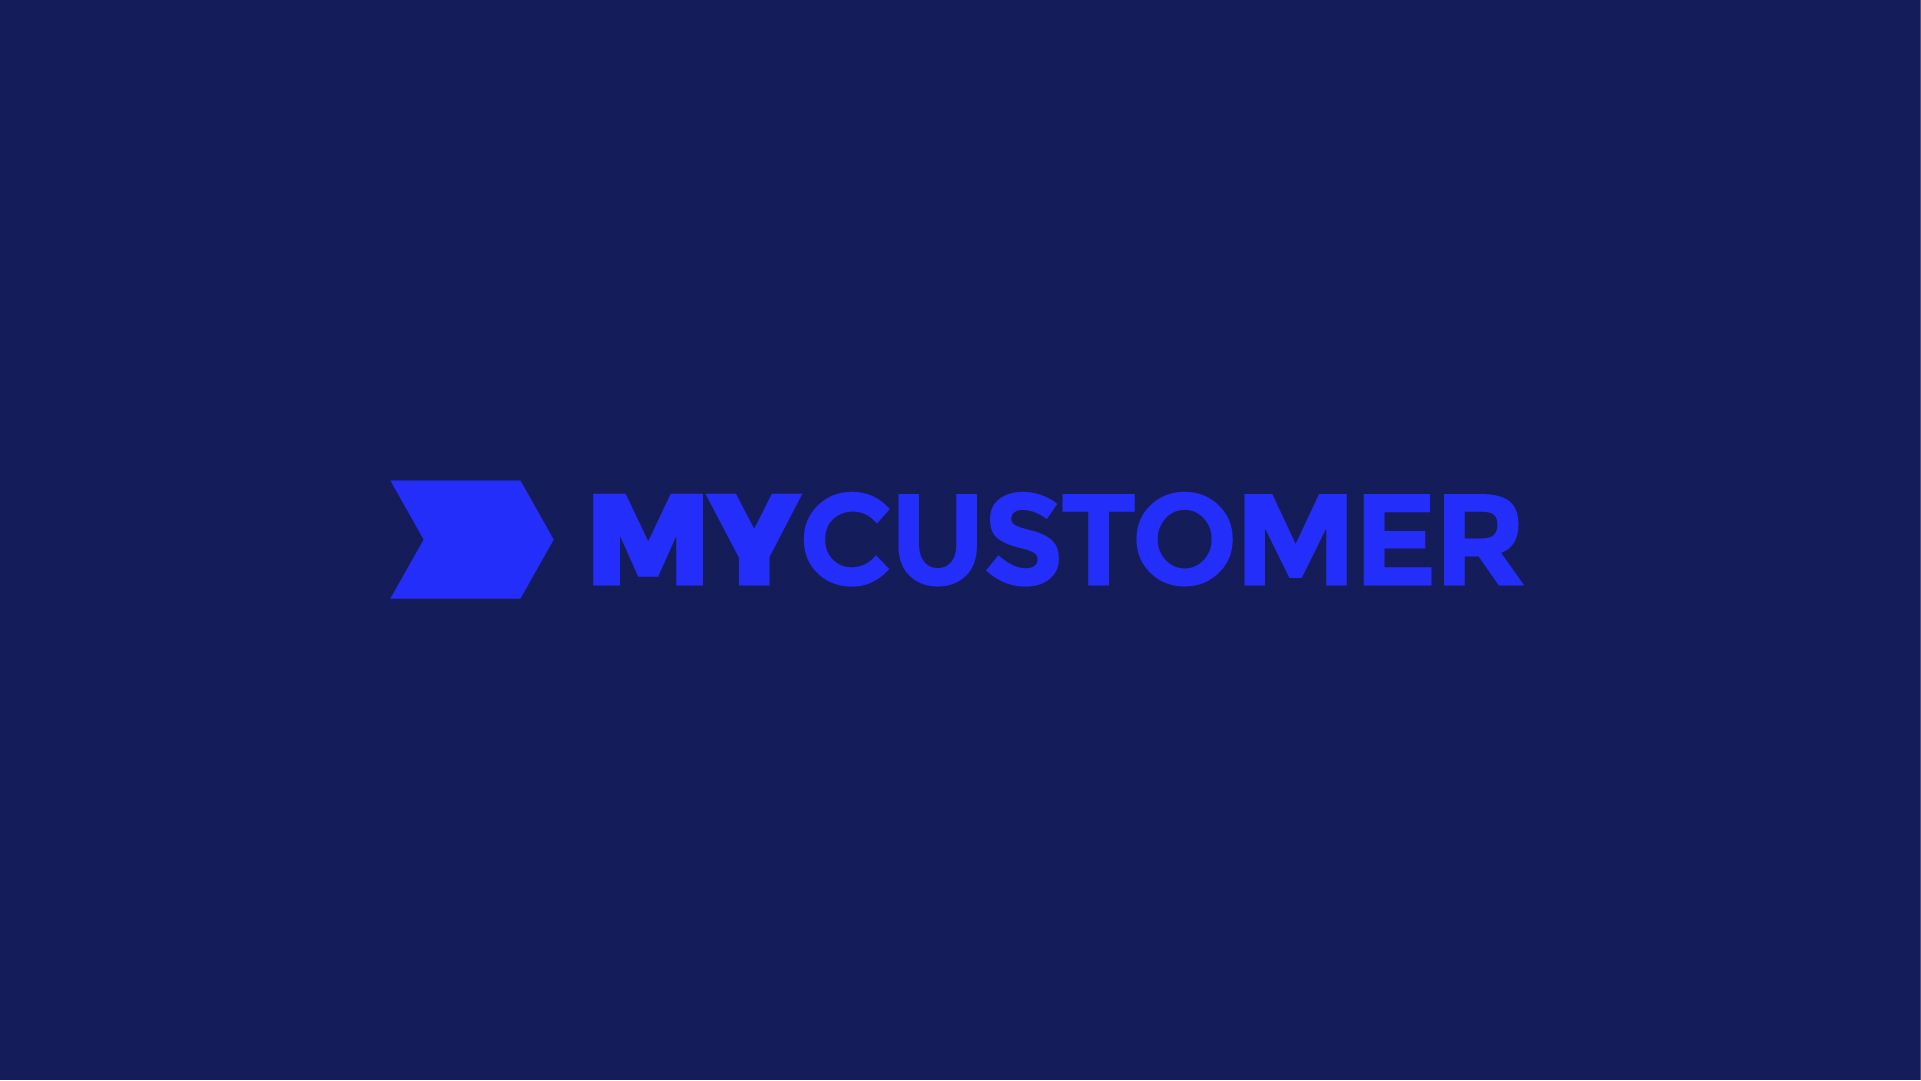 Emotion is the new frontier in customer relations | MyCustomer